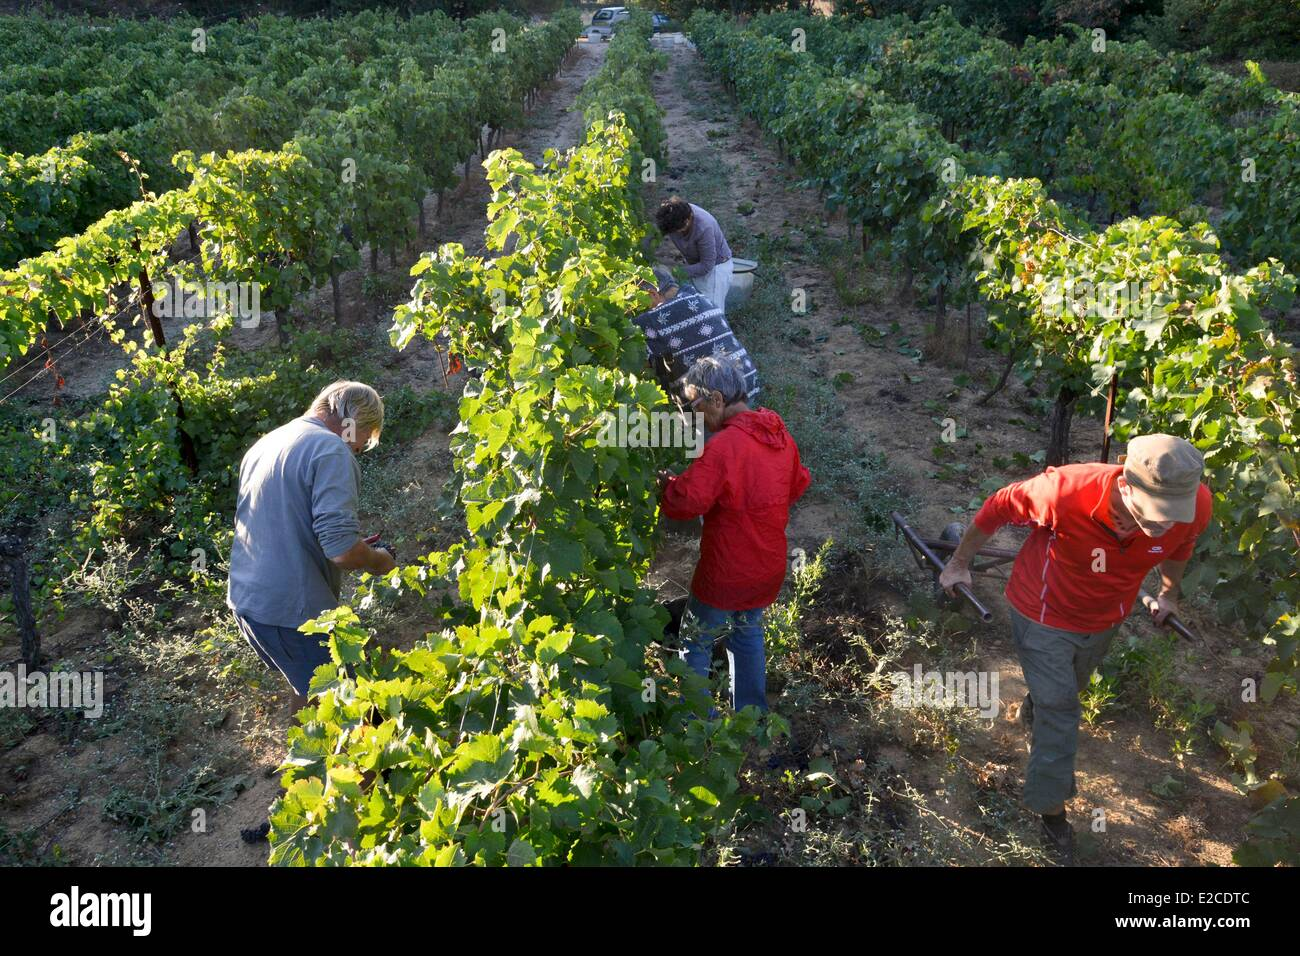 France, Herault, Boujan sur Libron, organic vineyards of the Domain of the Ancienne Cordonnerie, manual grape harvests, - Stock Image